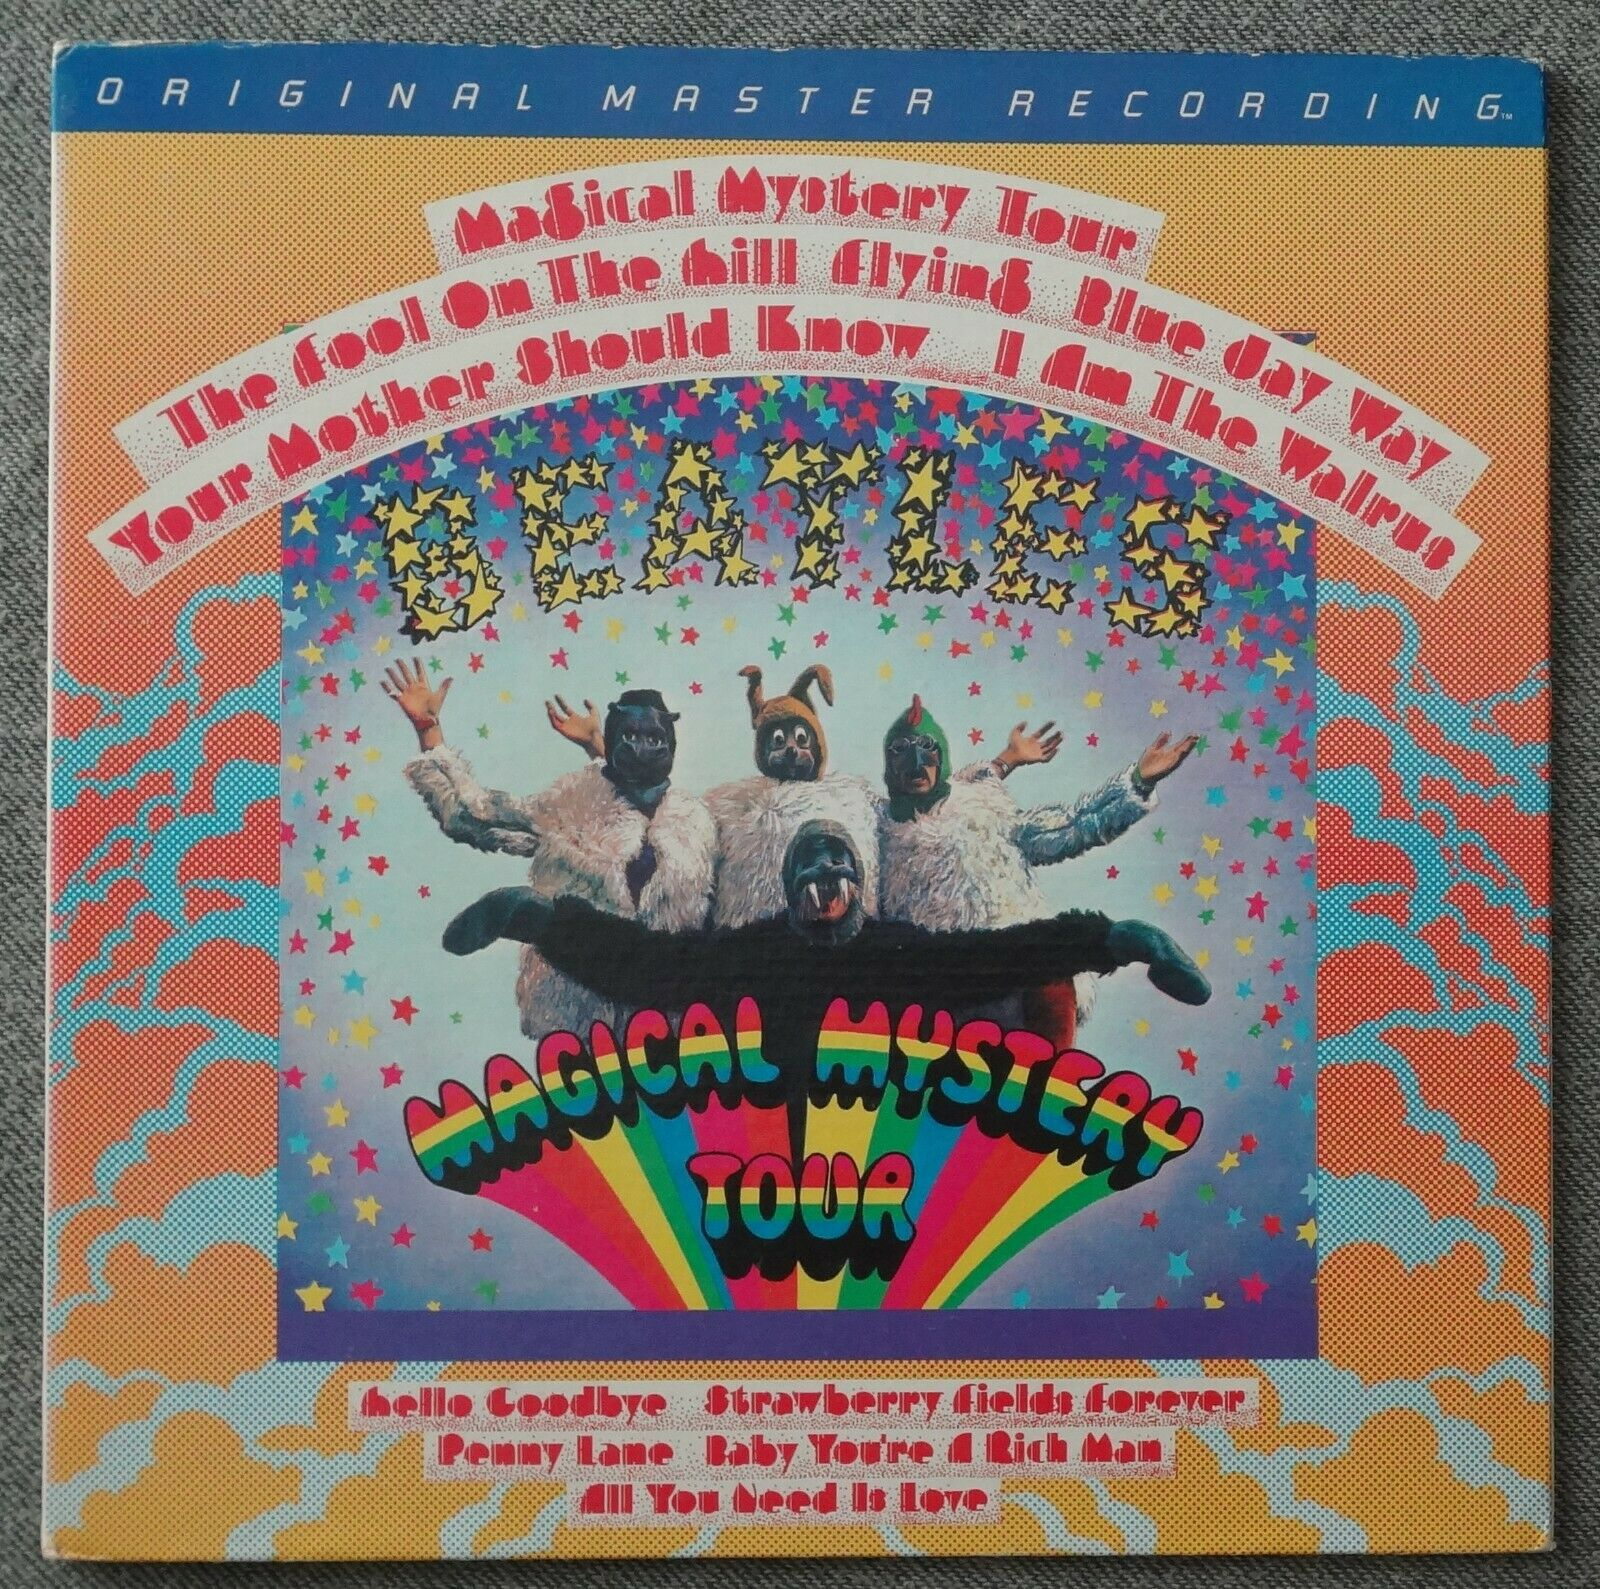 MFSL 1 -047 12 -33 Vinyl Beatles Magical Mystery Tour With Booklet Original 1980 - $49.00